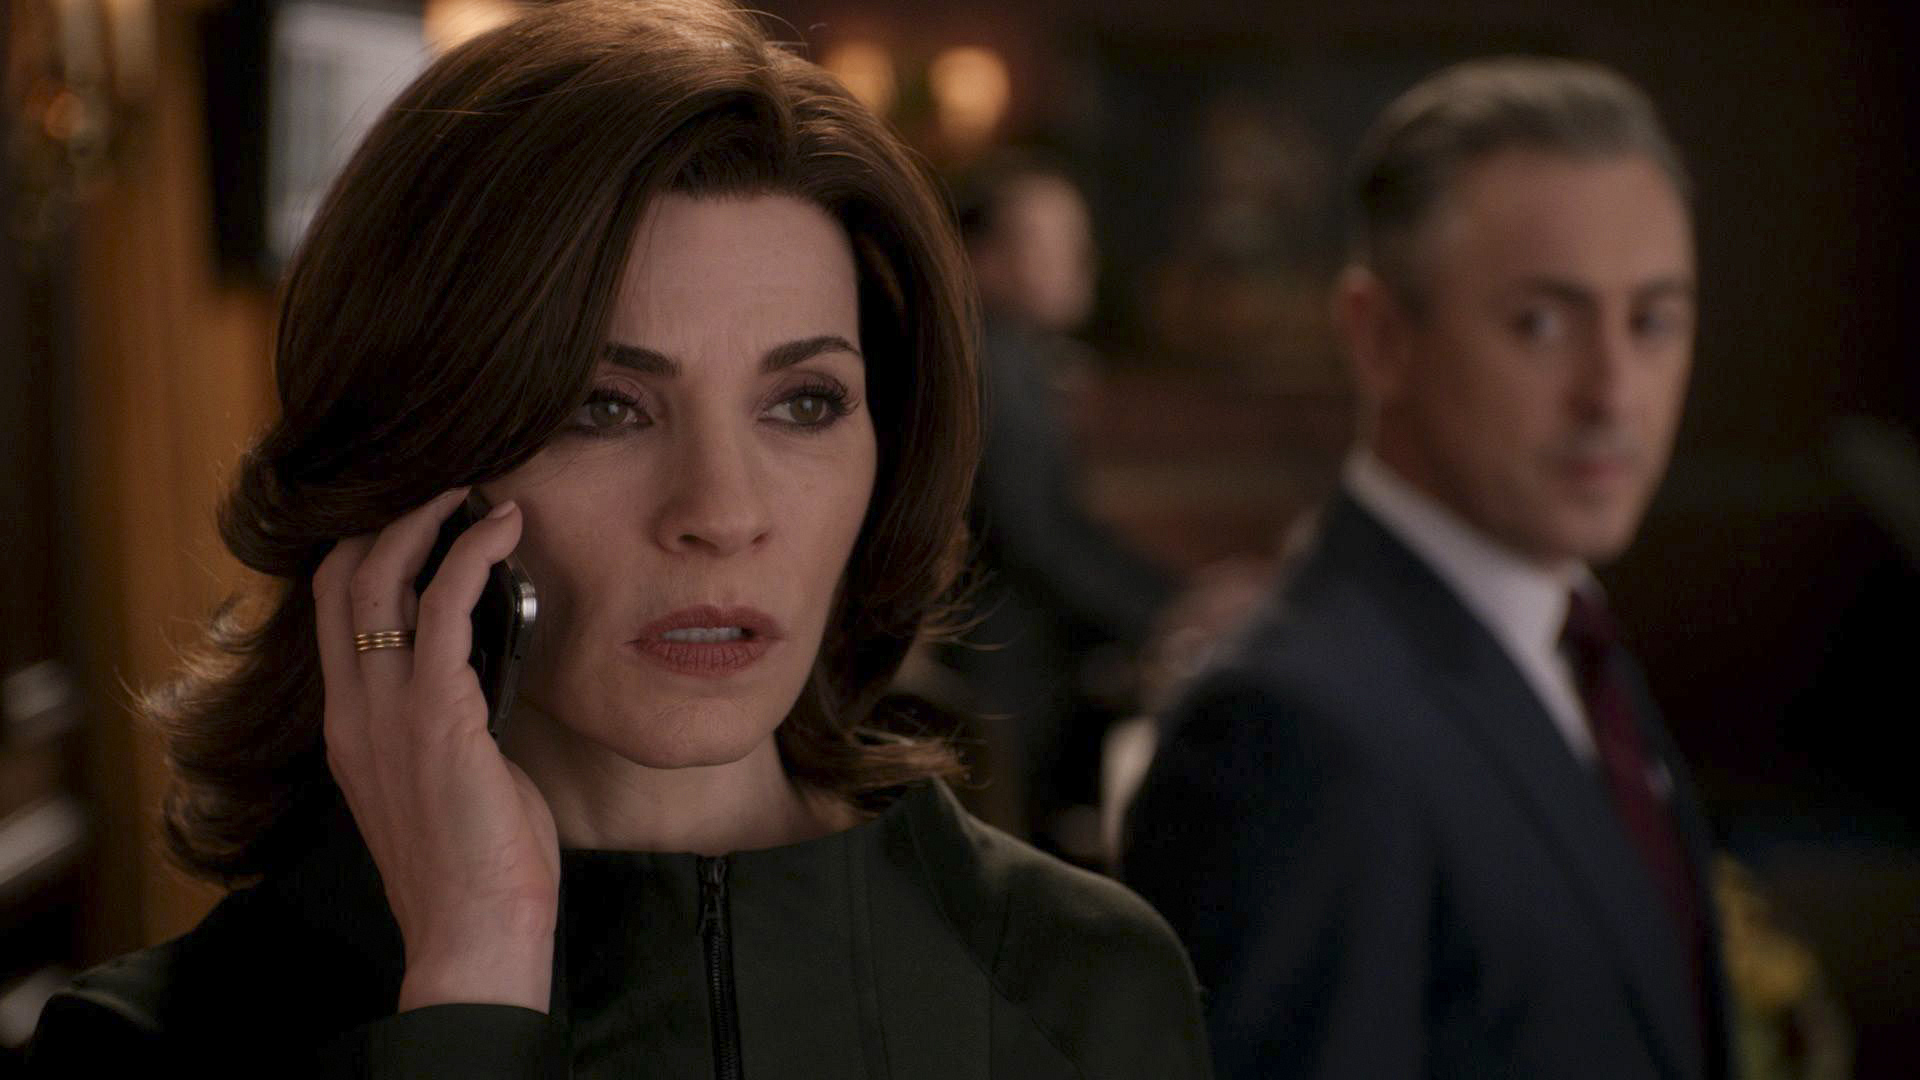 Season 5 Episode 16 - The Good Wife